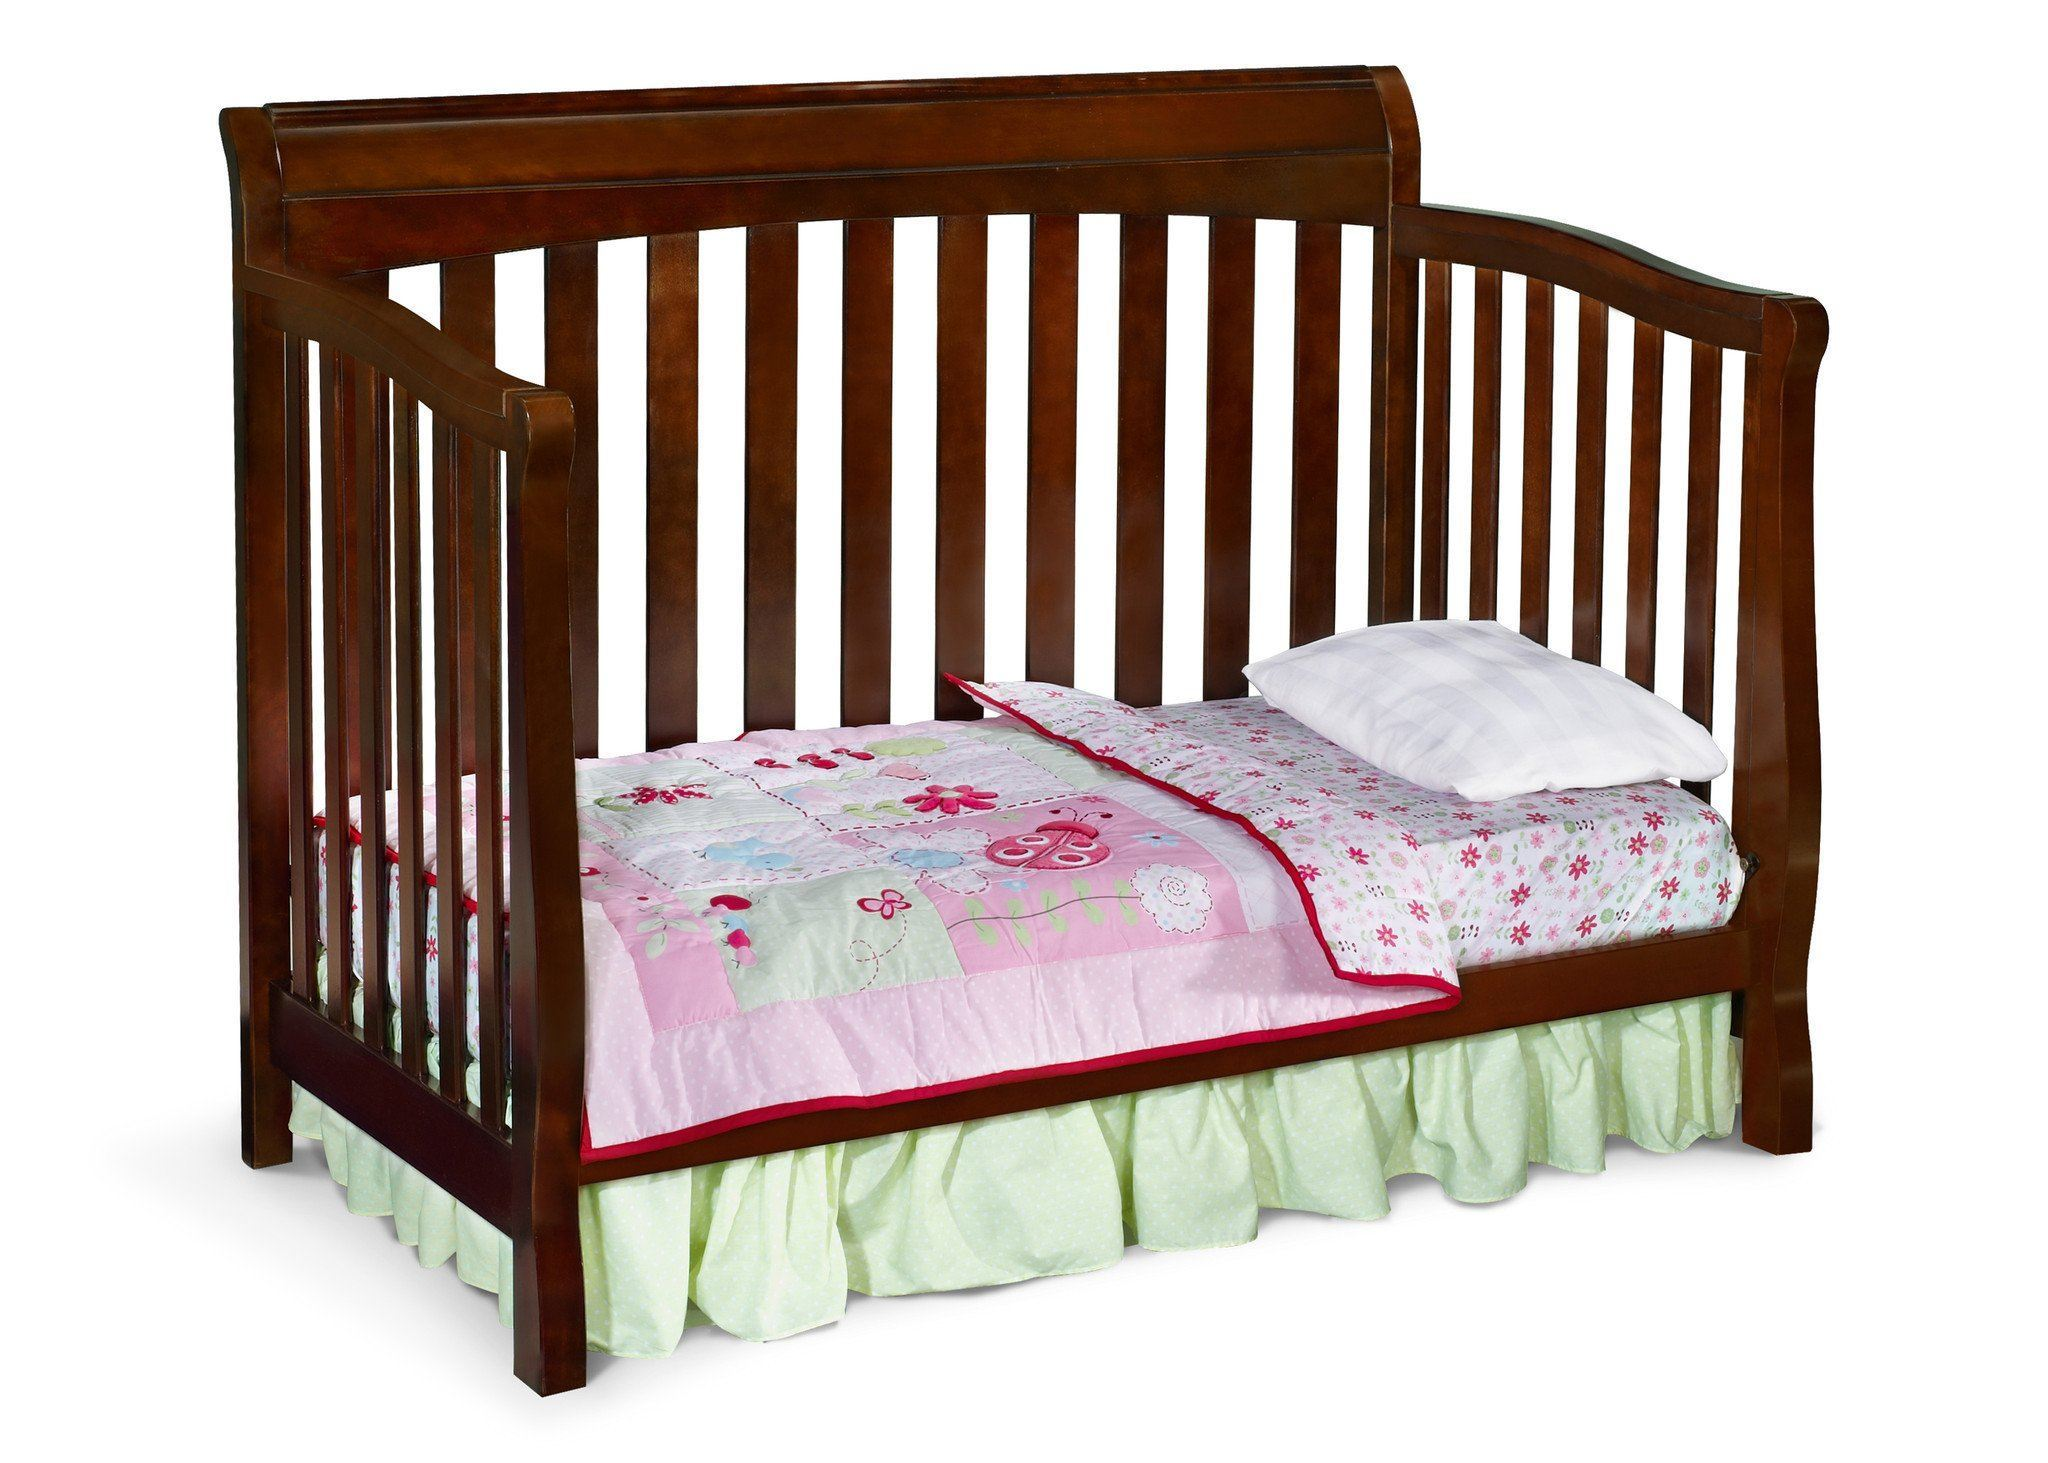 Delta Childrens Black Cherry Espresso (607) Eclipse 4-in-1 Toddler Bed Conversion c4c